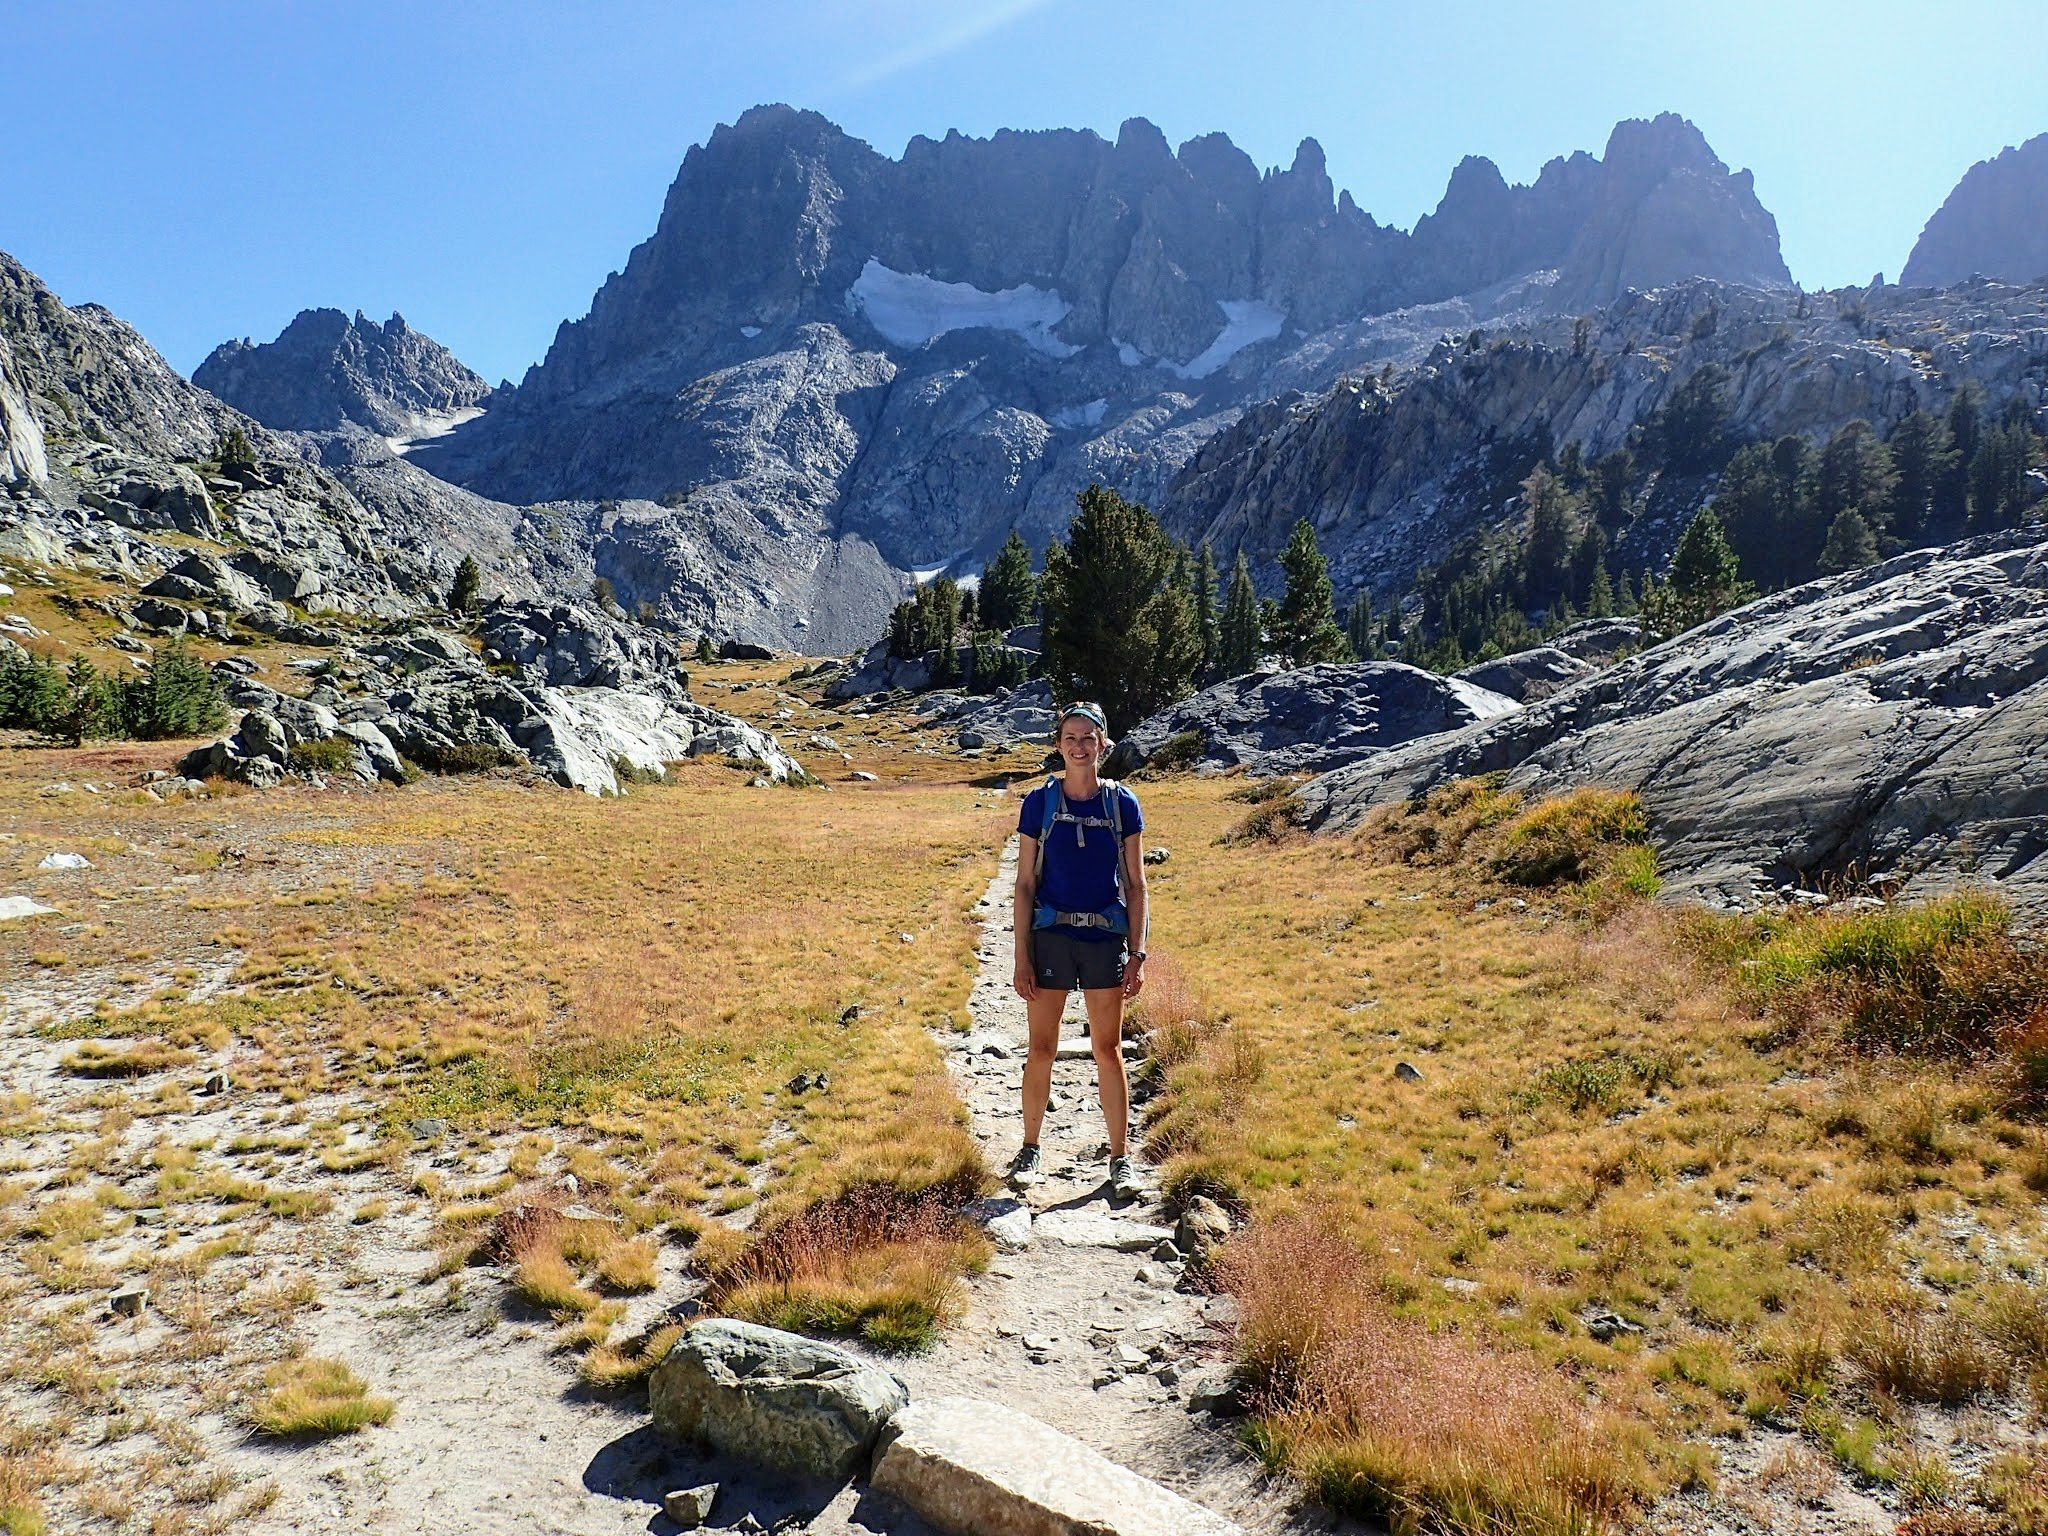 Hiker on alpine trail